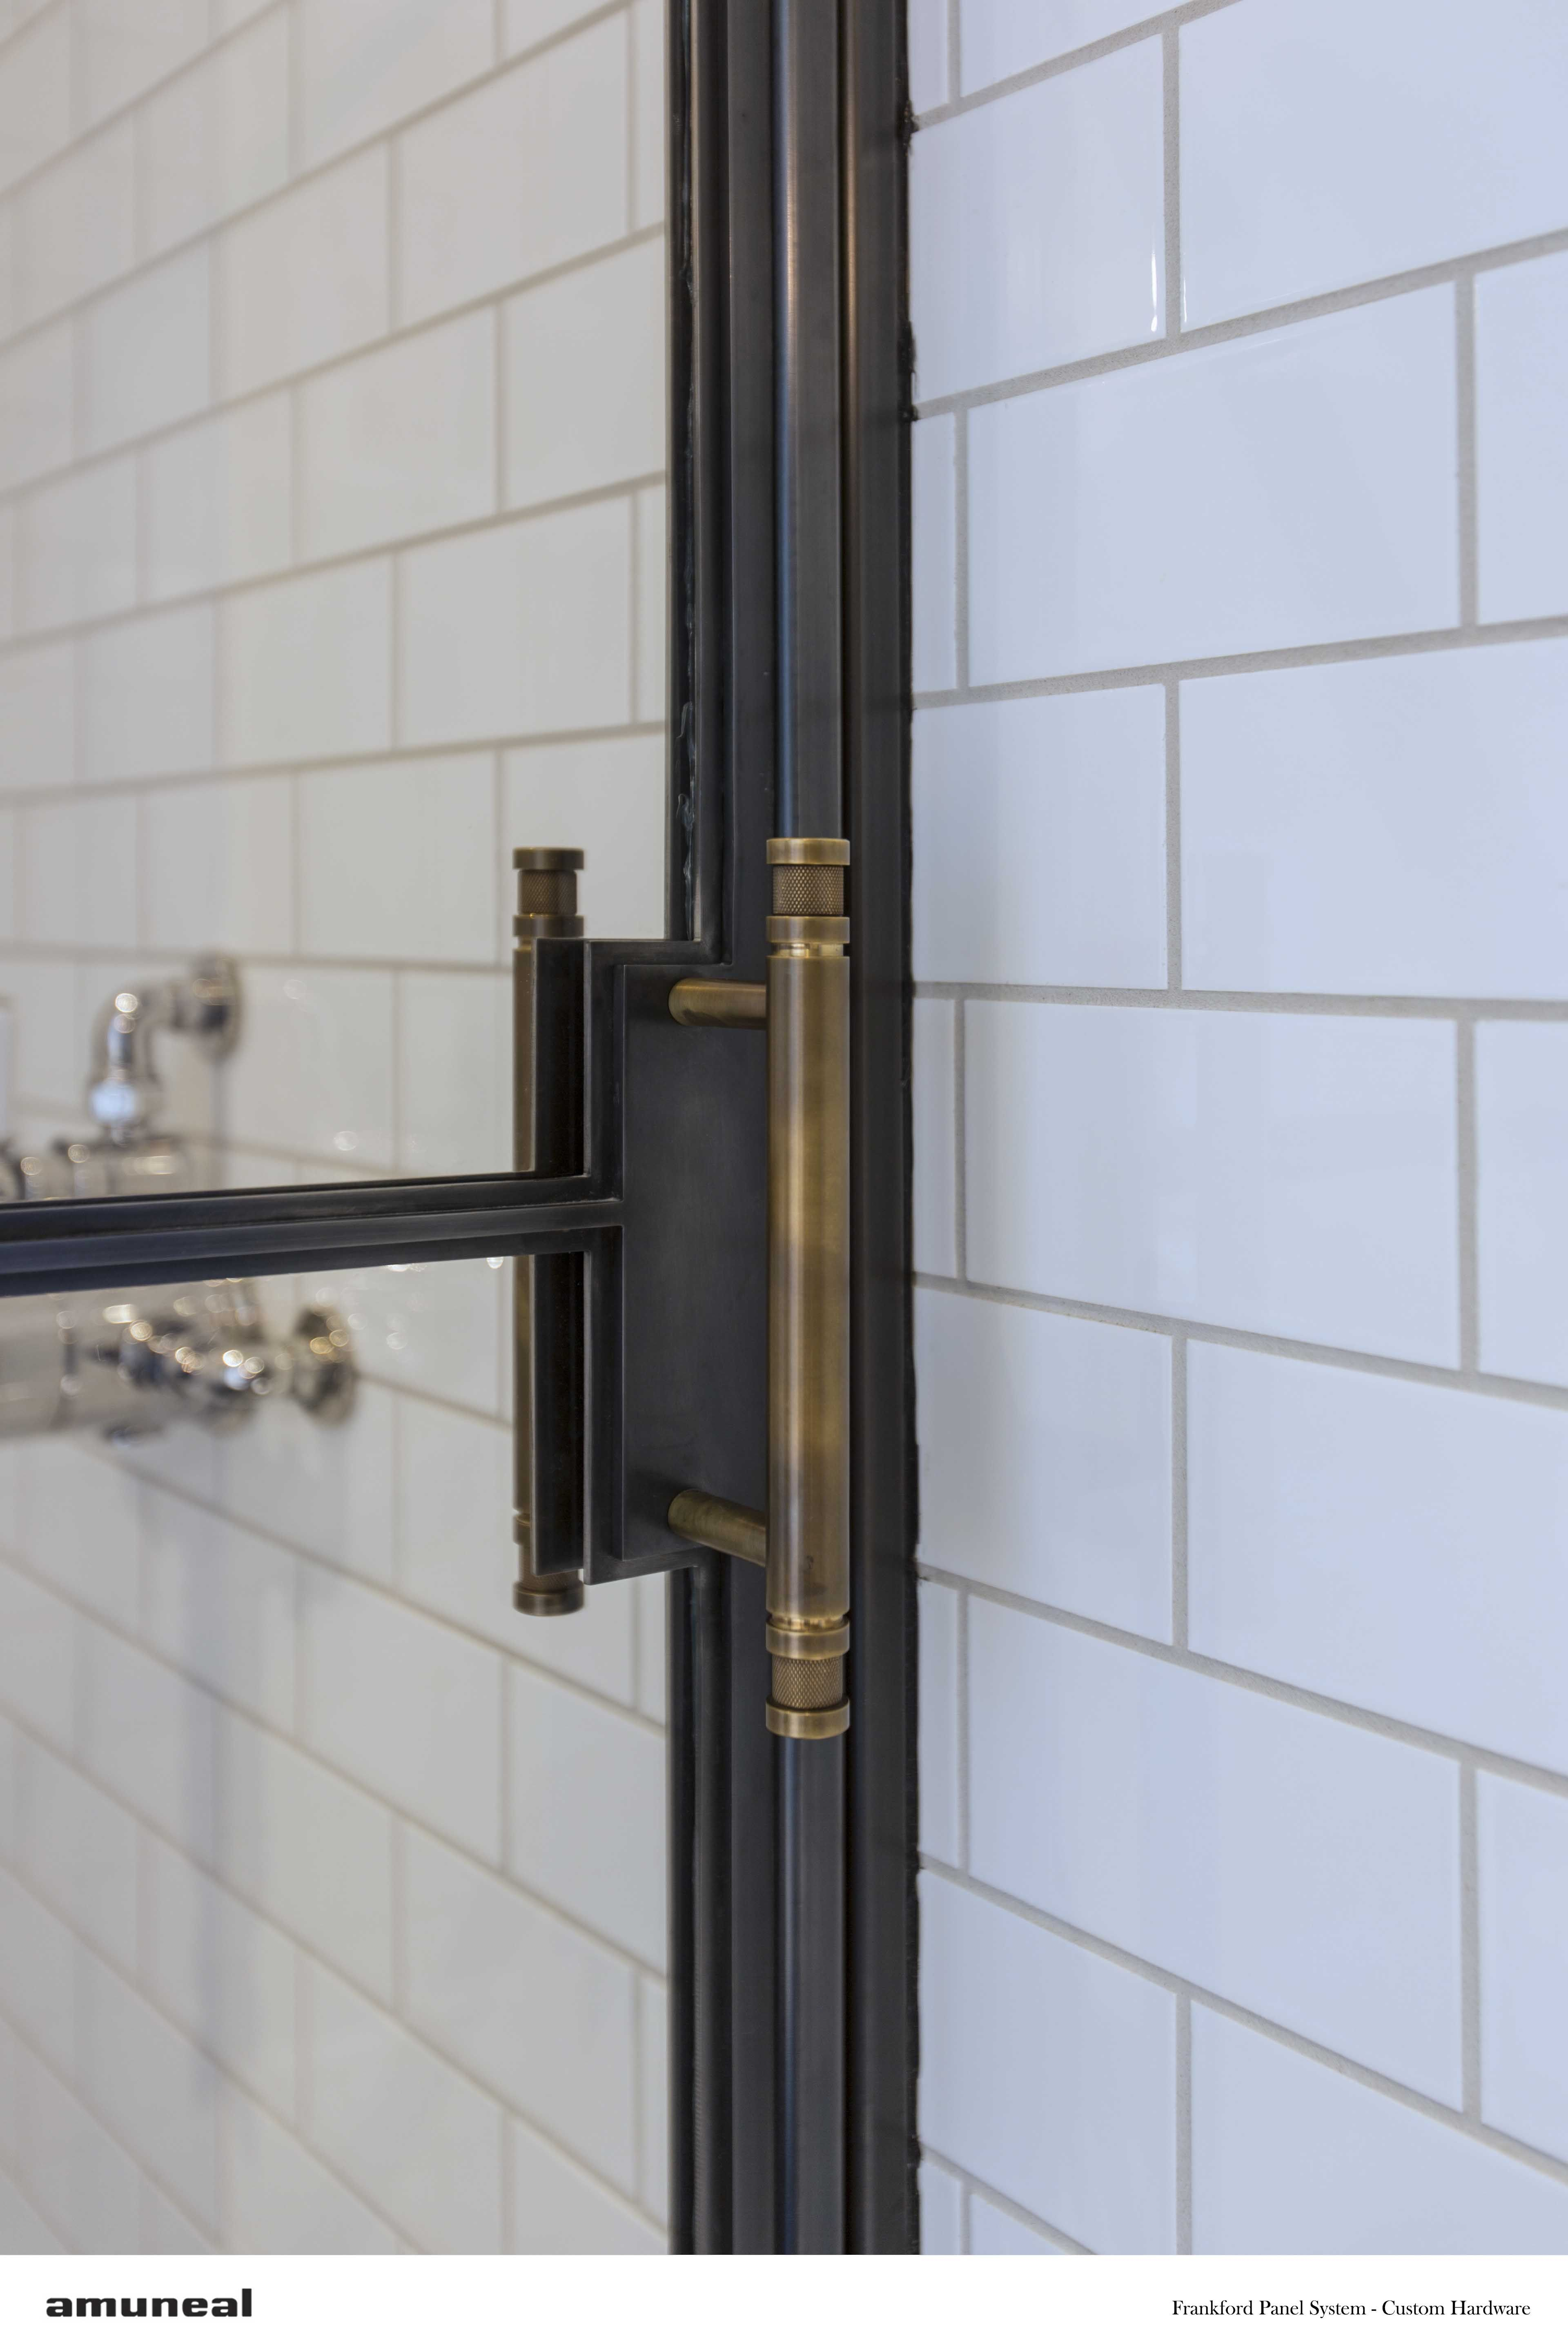 shower punch home buster goods handle brass pinterest fashion pin hard by handles lever handlesshower label door